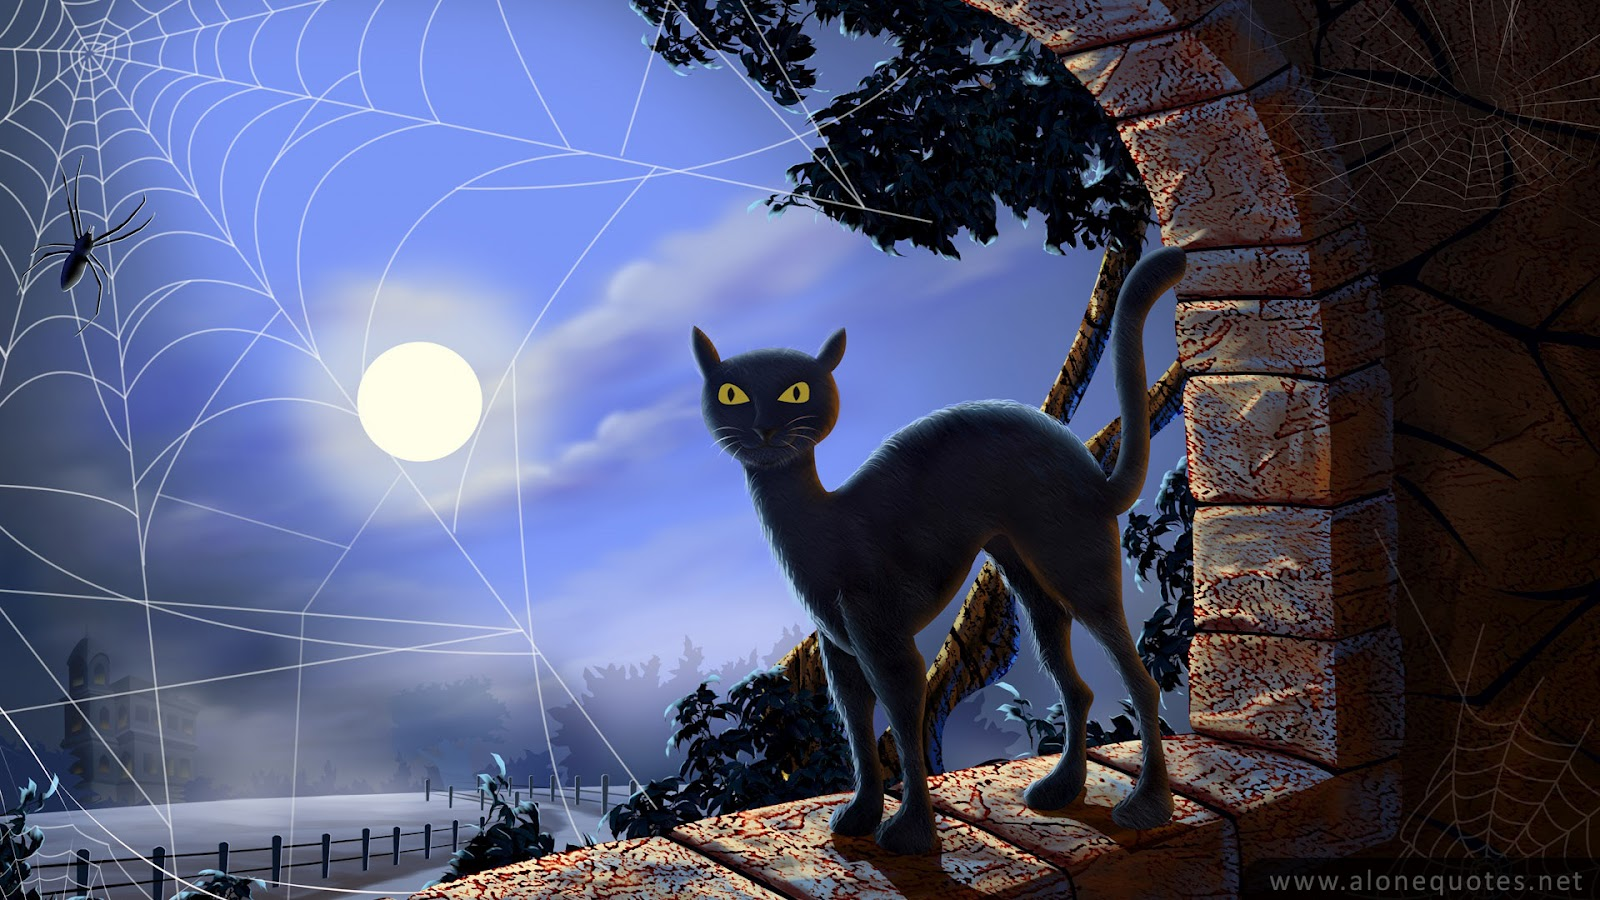 cat halloween wallpaper collection cat pumpkin halloween wallpapers 1600x900